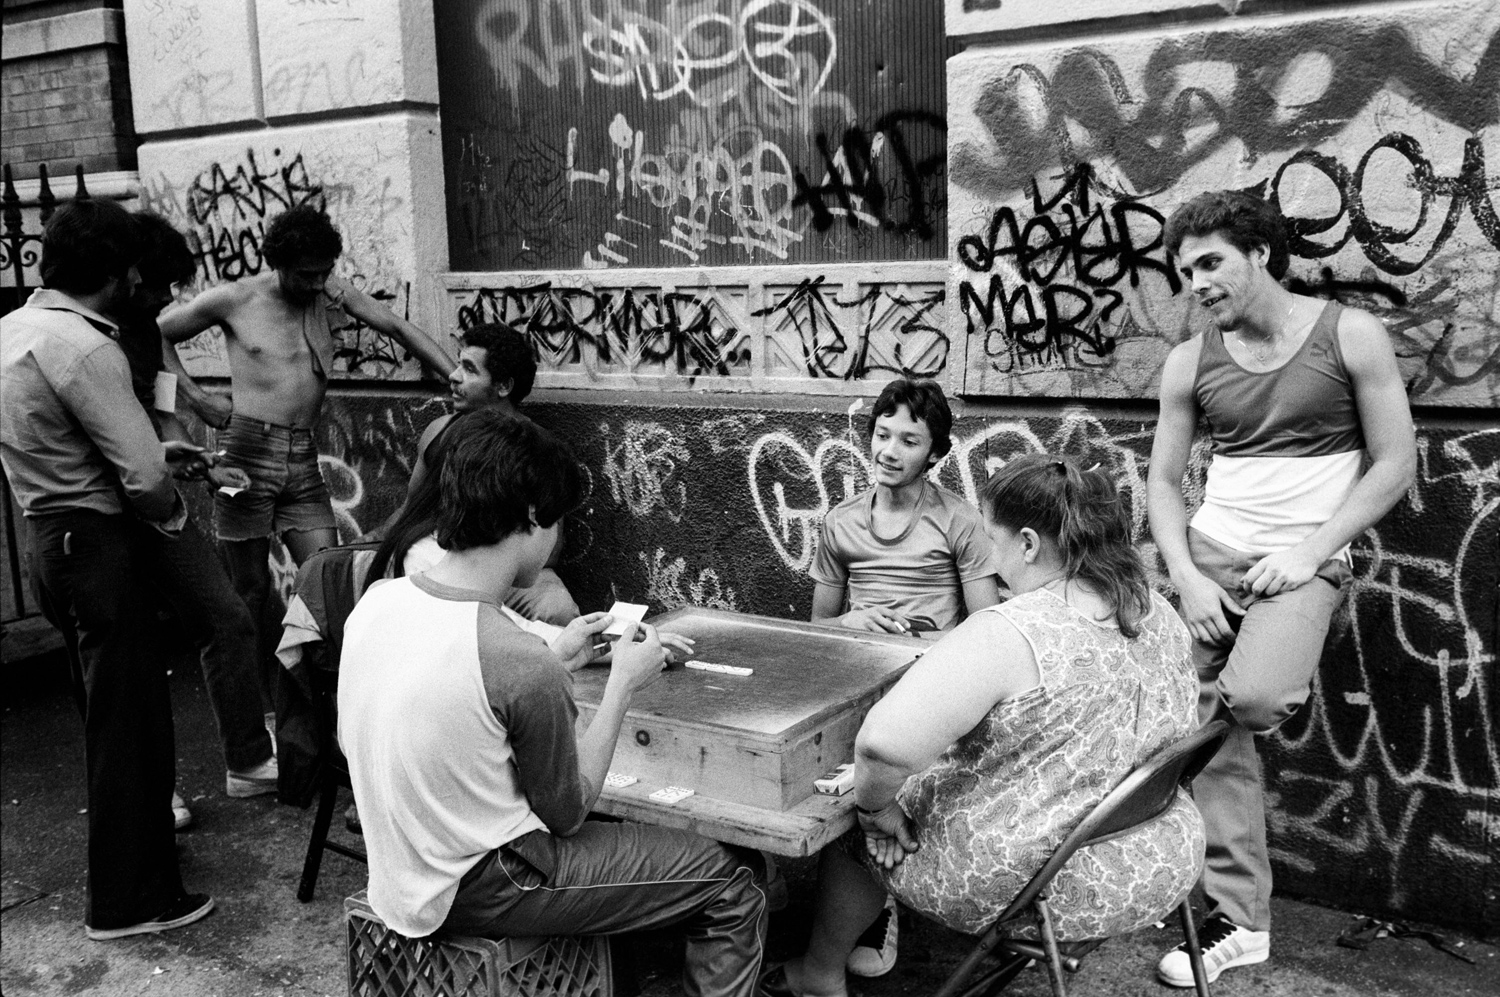 Games on the street, from Bronx Boys (FotoEvidence, 2011) by Stephen Shames.